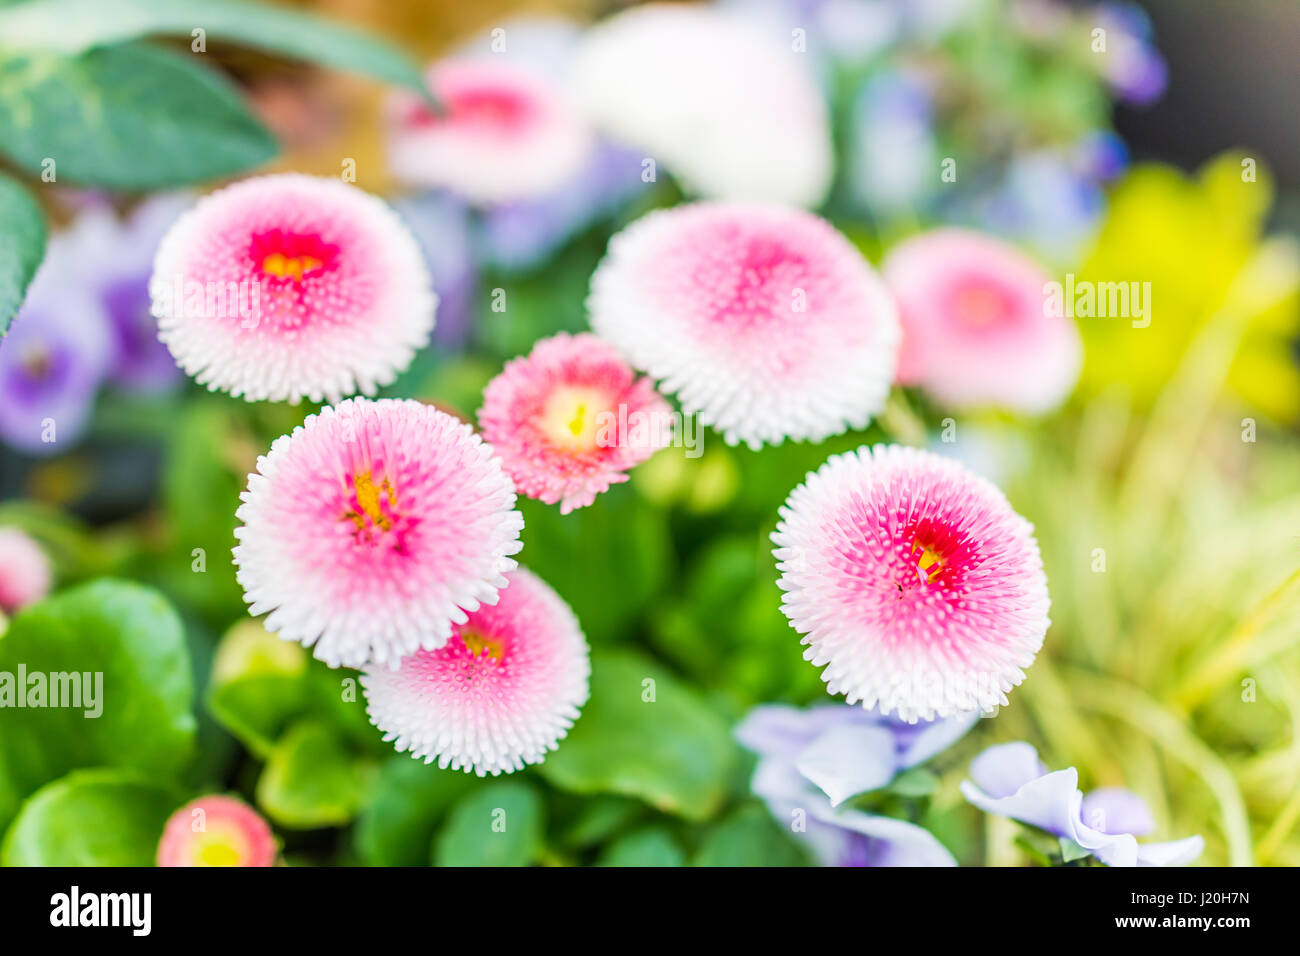 Daisy double daisy bellis perennis stock photos daisy double daisy english daisy or bellis perennis plant with colorful pink and white flowers macro closeup stock izmirmasajfo